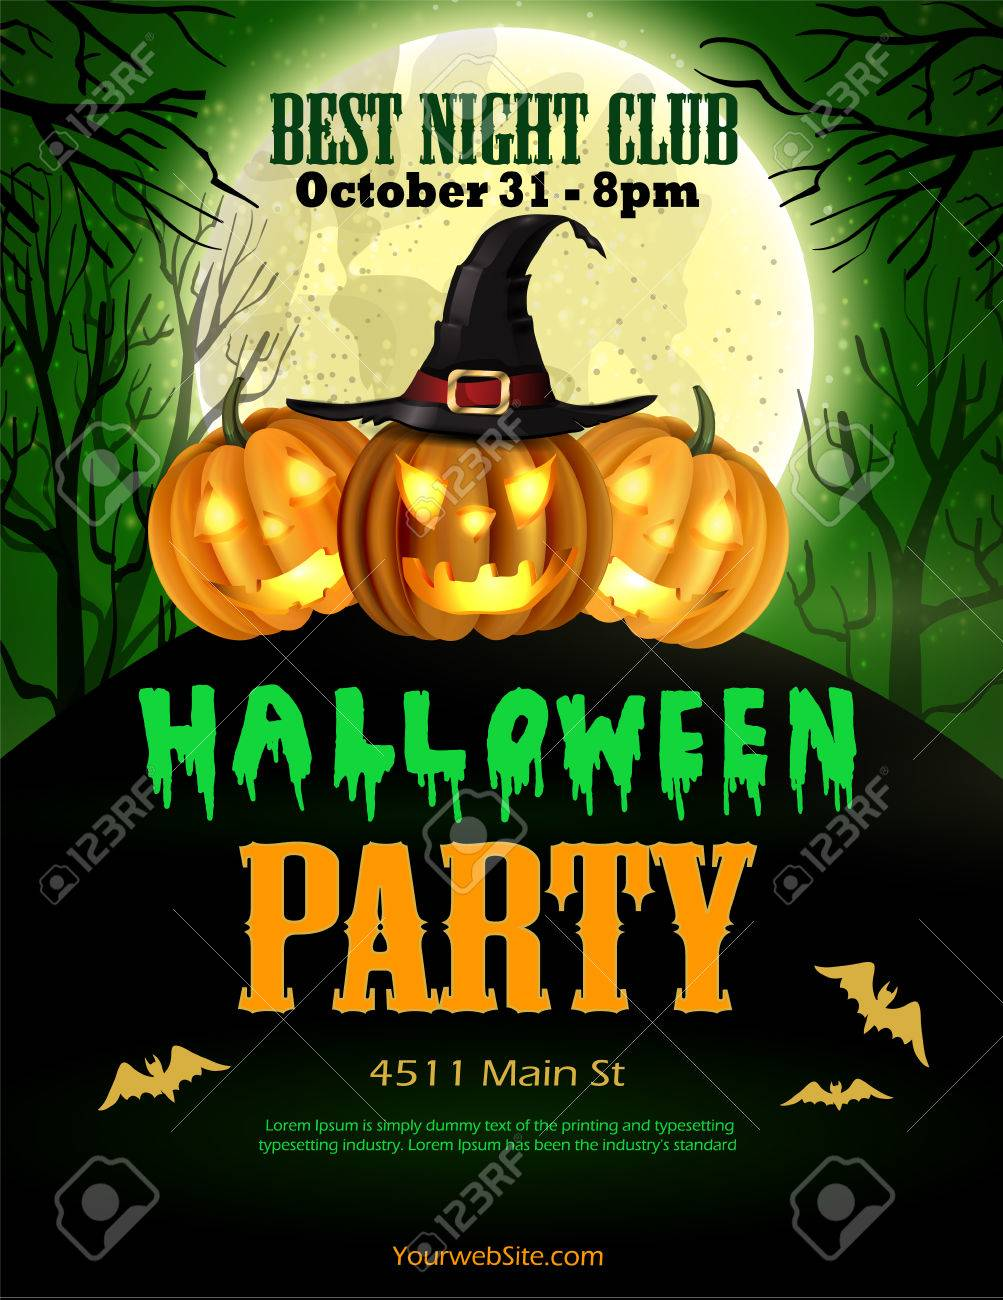 Halloween Party Flyer With Pumpkins, Hat, Bats Vector Royalty Free ...